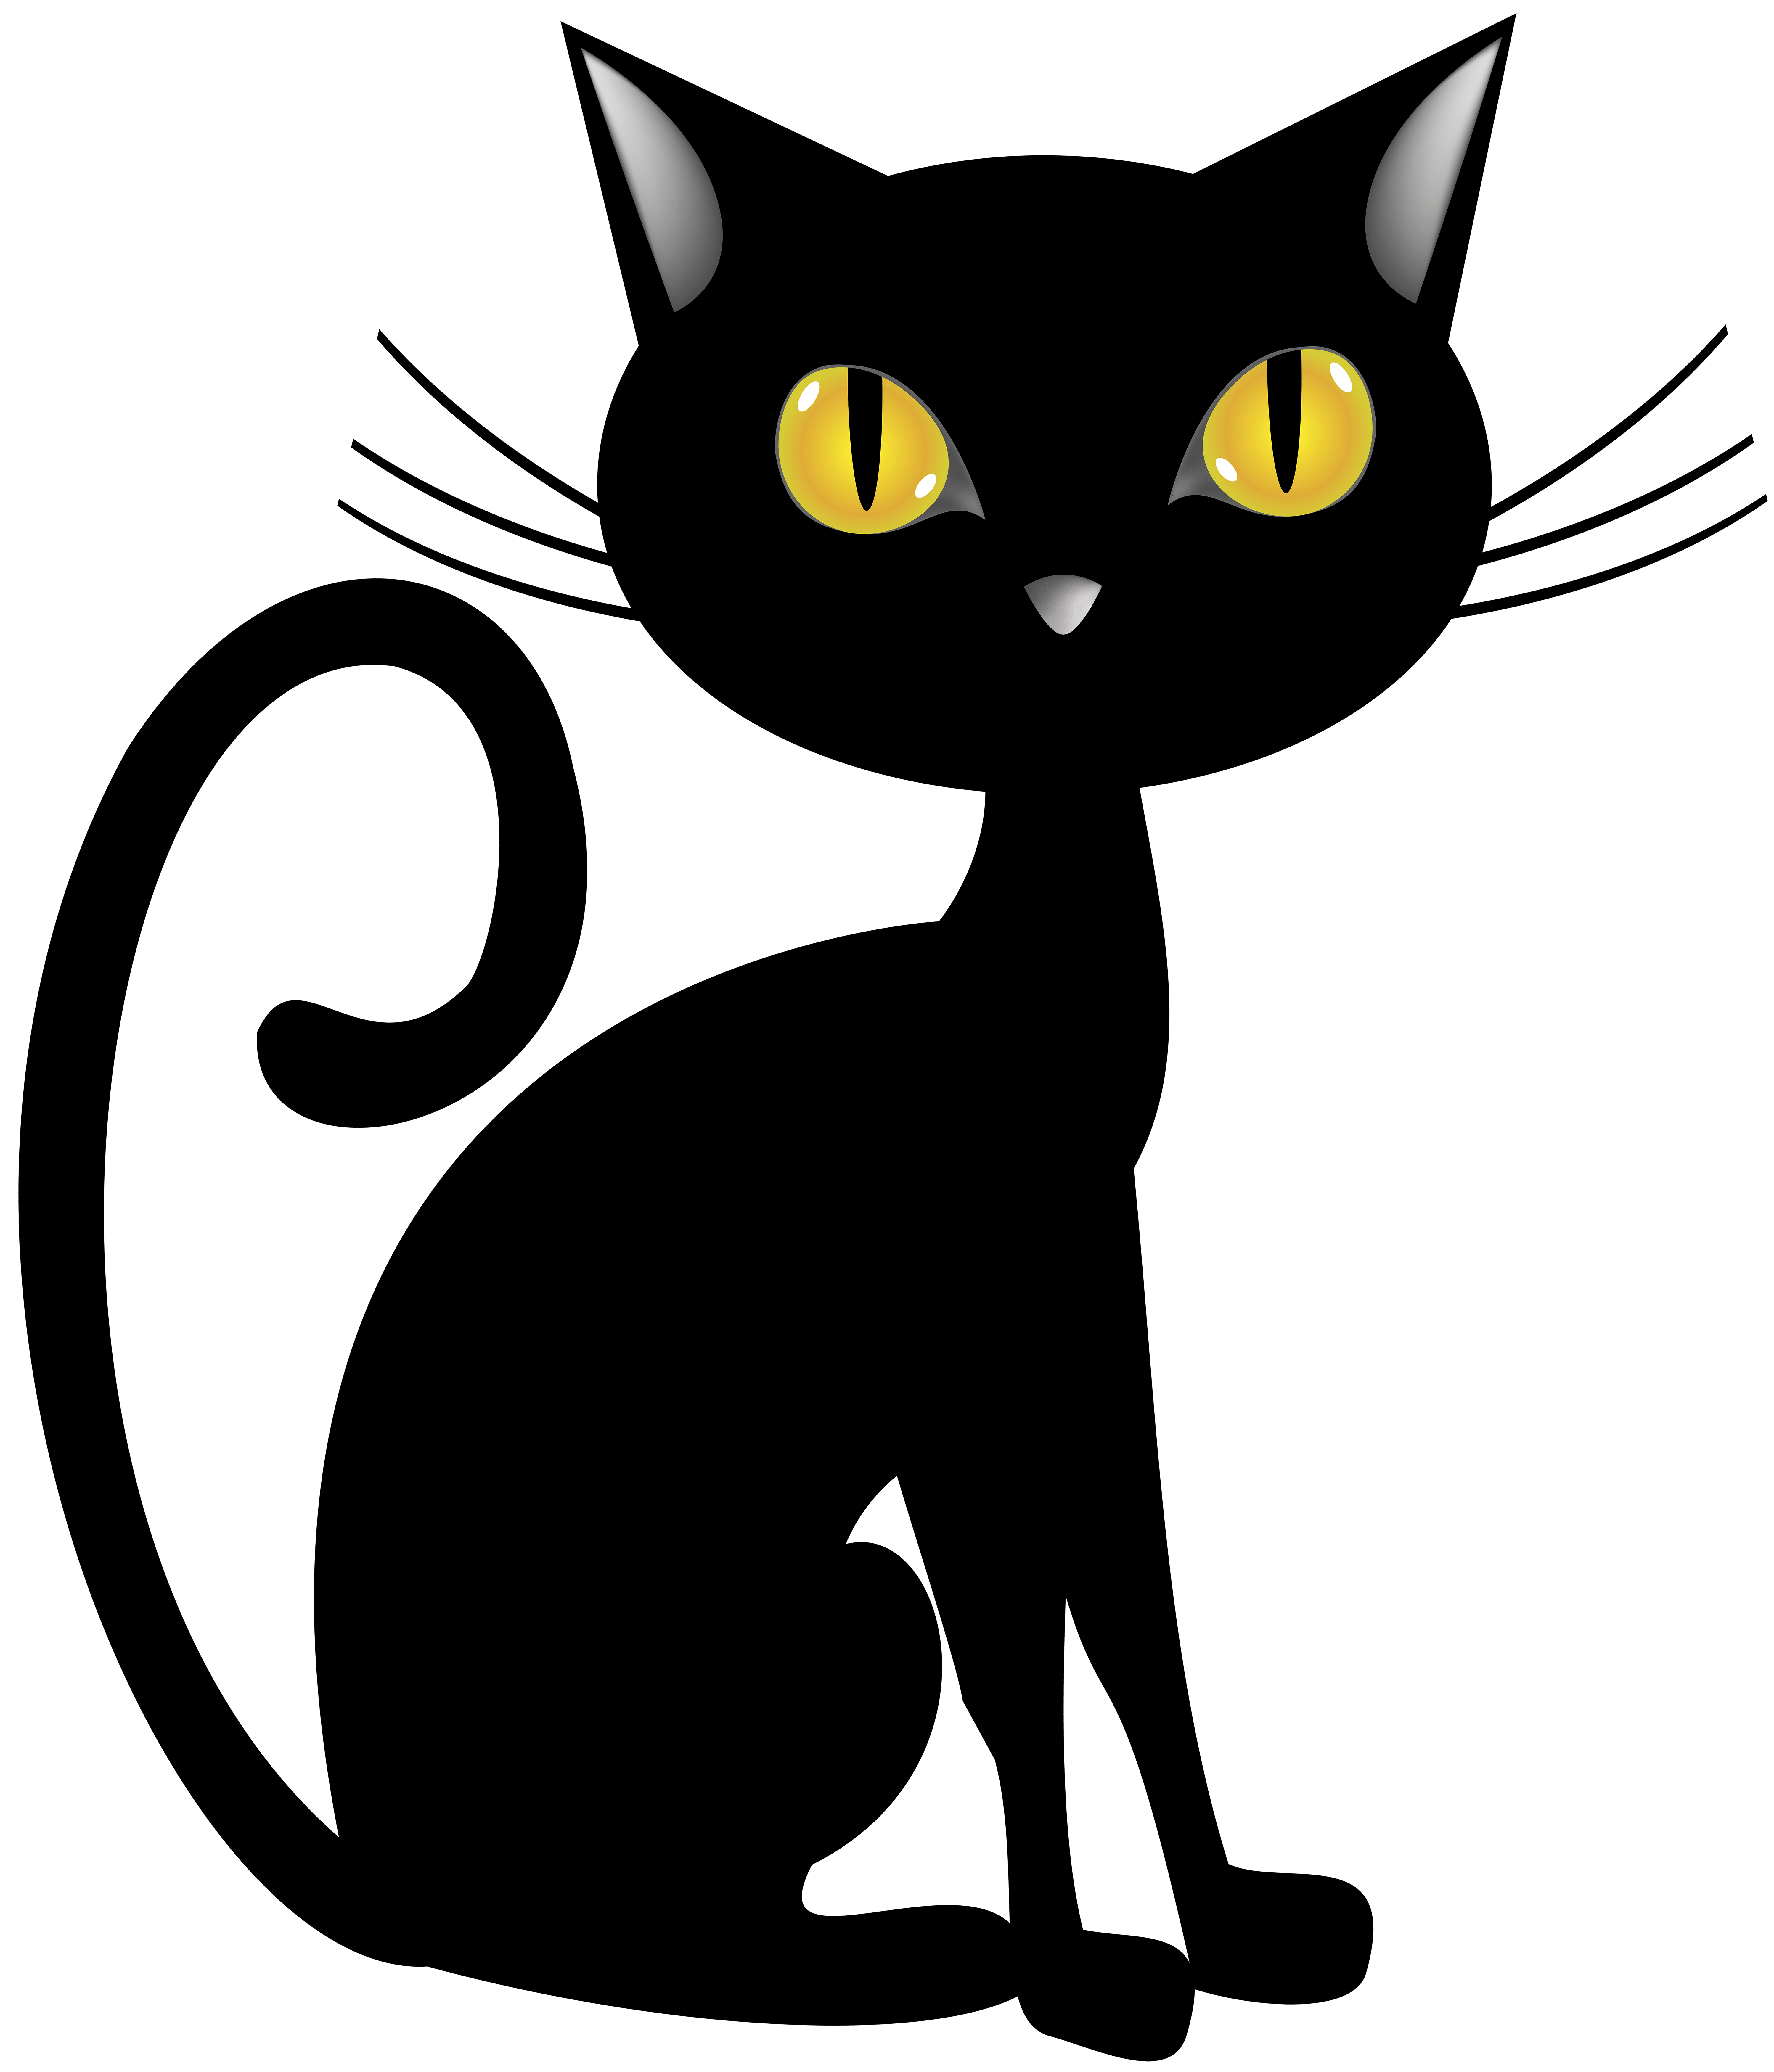 Halloween black and white halloween cat clipart black and white halloween clipart black and white filsize: Halloween Black Cat Png Clip Art Image Gallery Yopriceville High Quality Images And Transparent Png Free Clipart